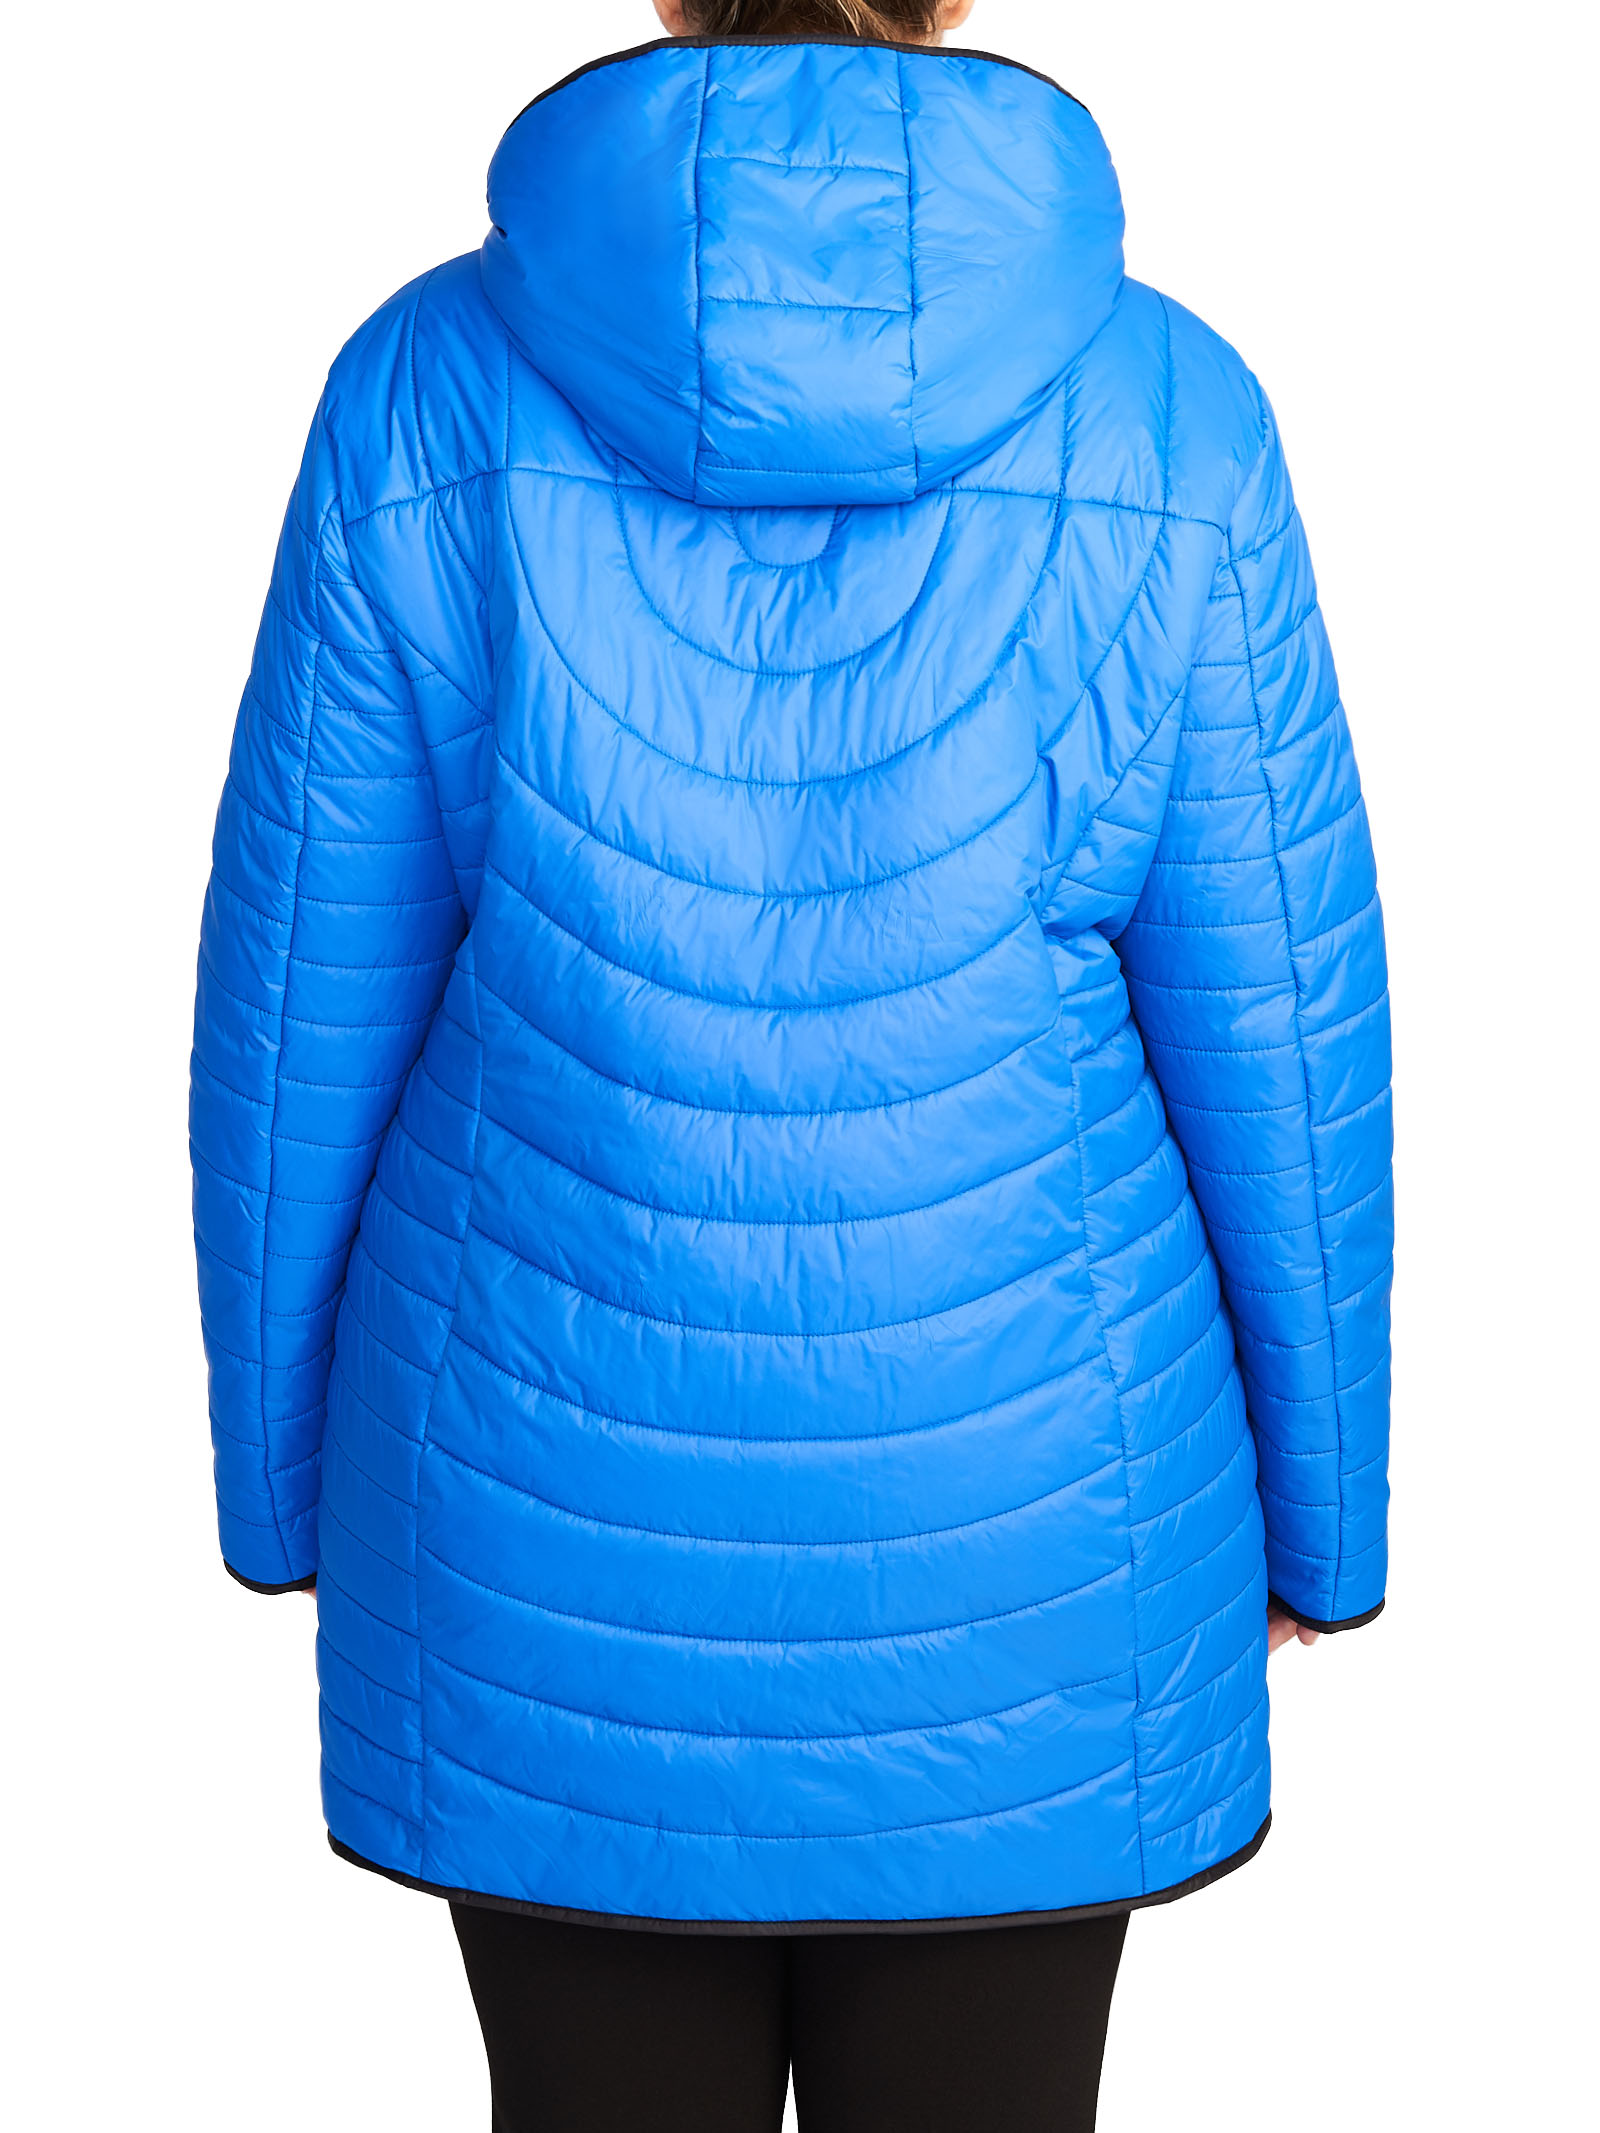 Contrast Zip Quilted Raincoat, Blue, hi-res